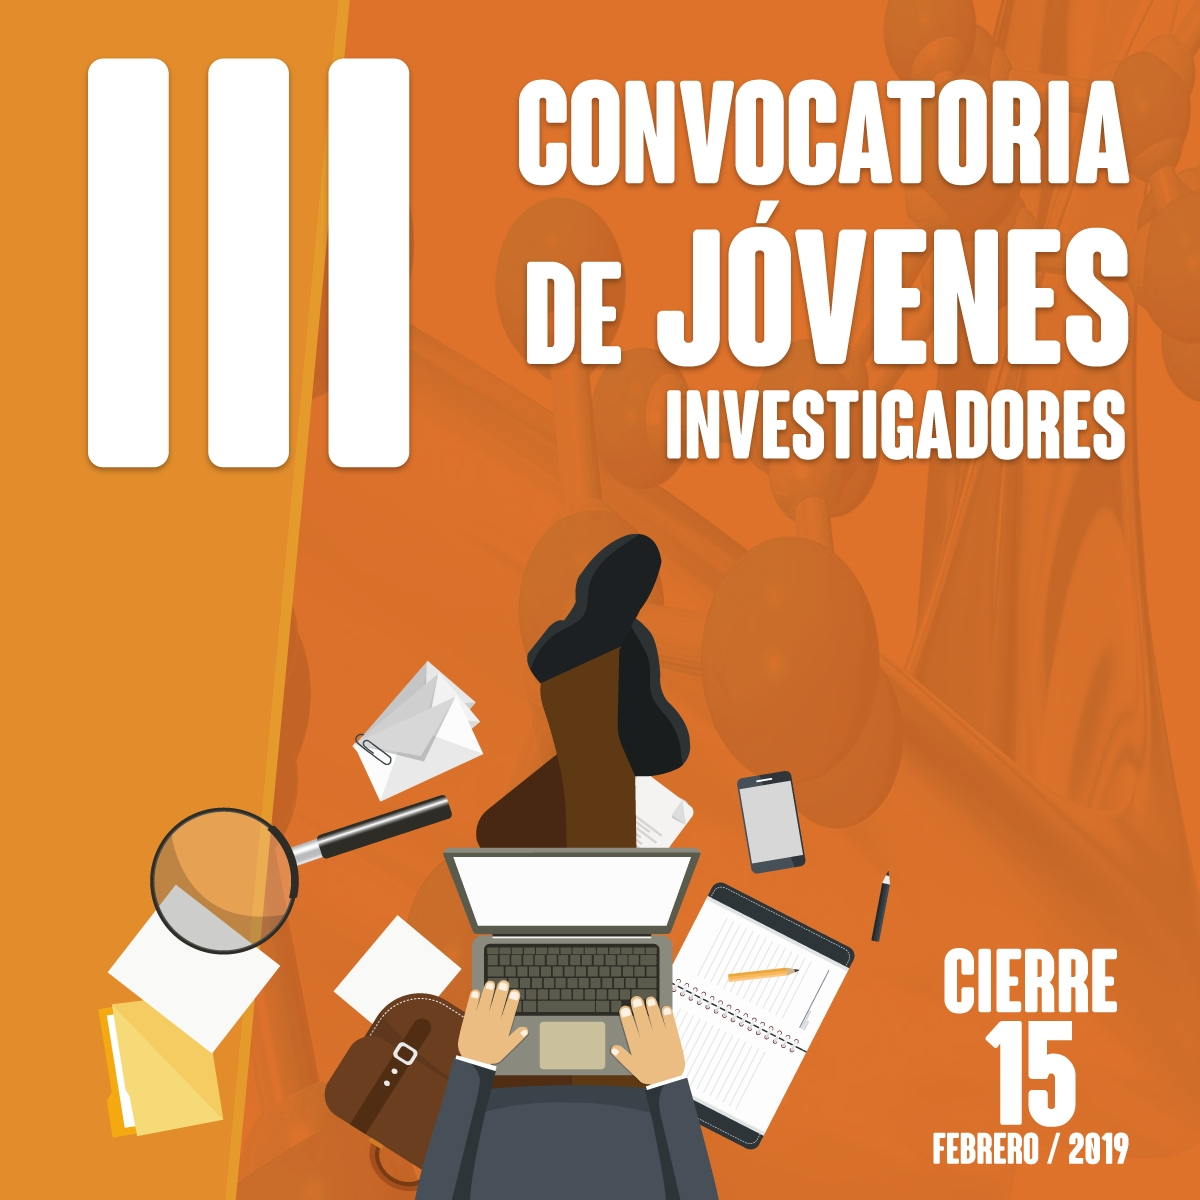 III Internal Convocation of Young Investigators 2019